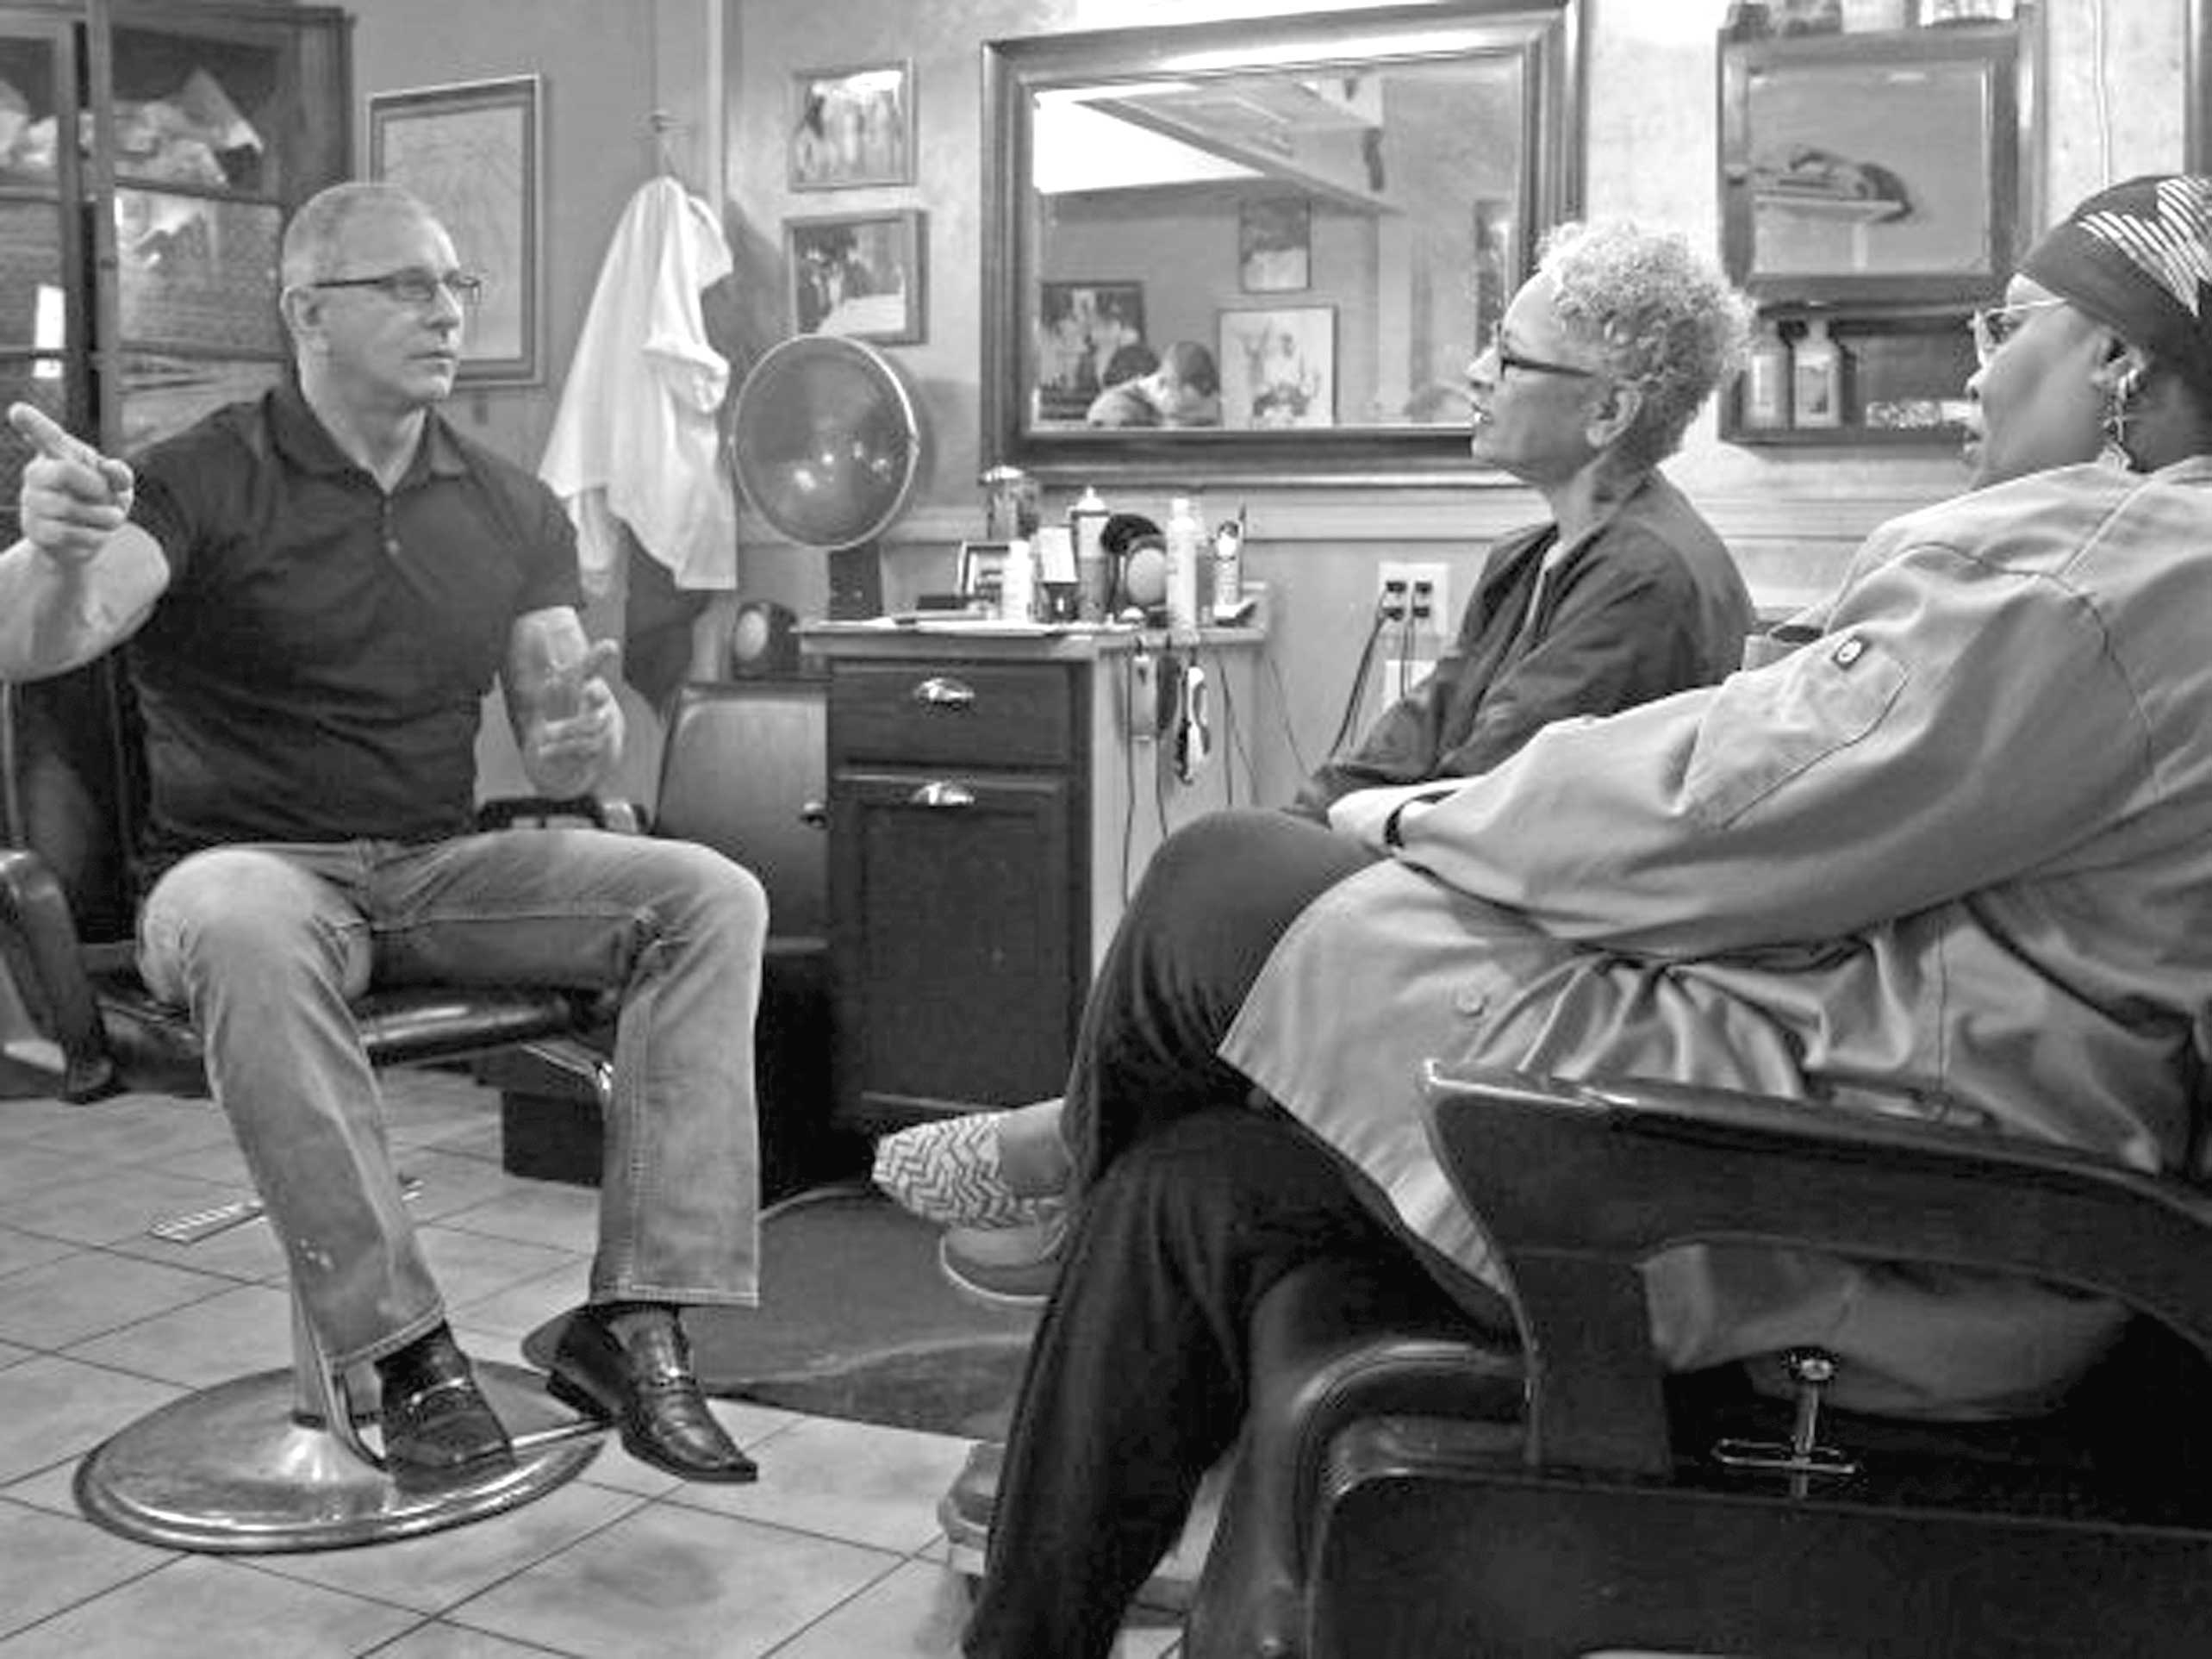 Barber Shop Irvine : ? host Robert Irvine talks with owners of the JuJu Cafe and Barber ...